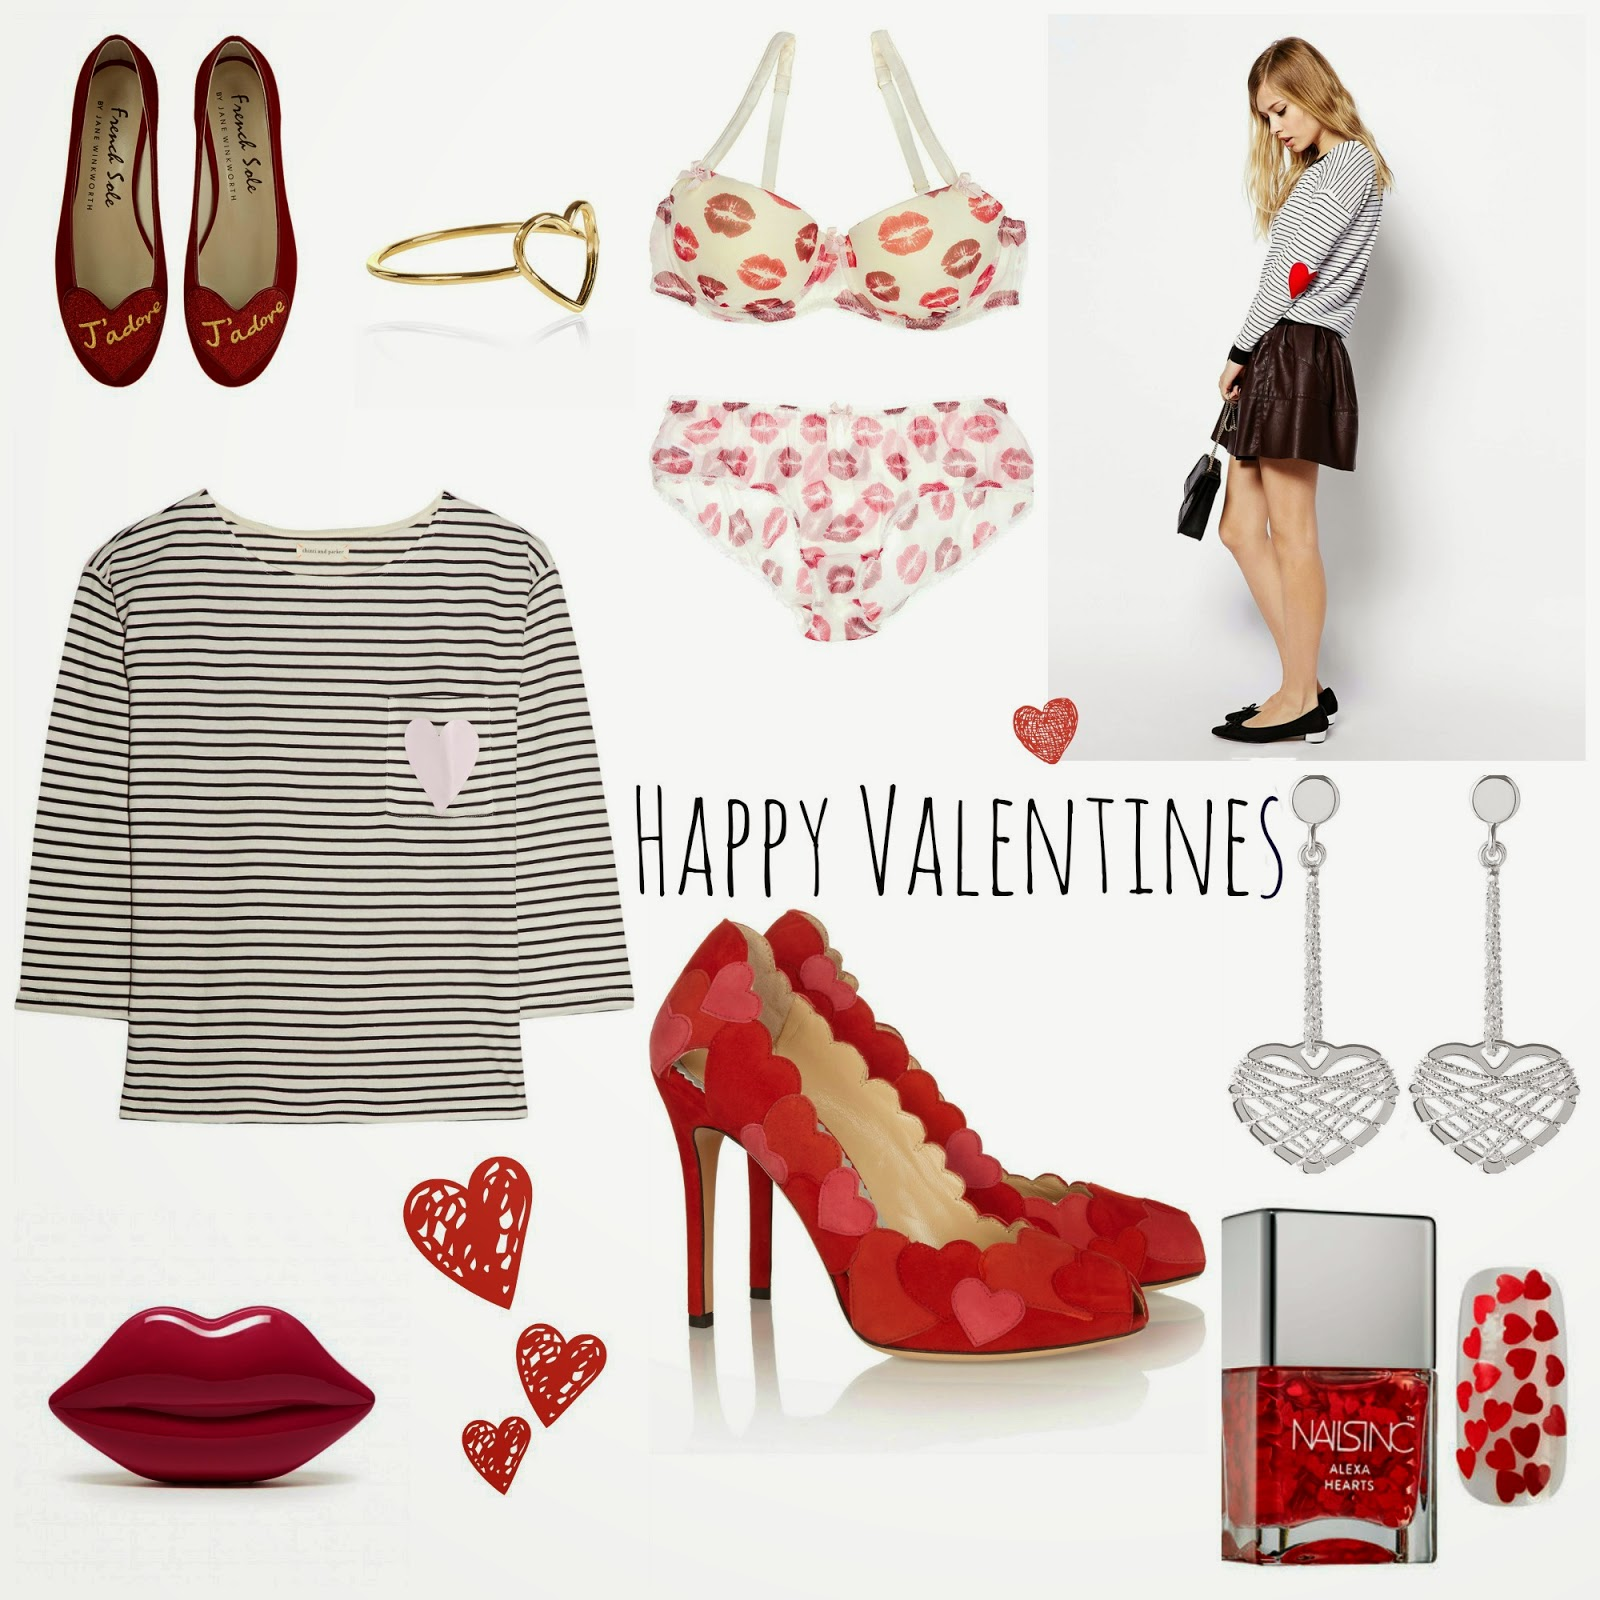 mamasVIb | V. I. BABYMAMAS: Valentine's Day style - Are you (fashion) ready for Love? | valentines day | valentine | gift | what to wear | sexy clothes | style | fashion | mimi holliday | oliver bon as | accessorise | charlotte Olympia | asks | french sole | adore | sexy |romance | love heart print | kiss print | lingerie | lulu guiness | lips |lips print | handbag | heels | mamasVIb | stylist